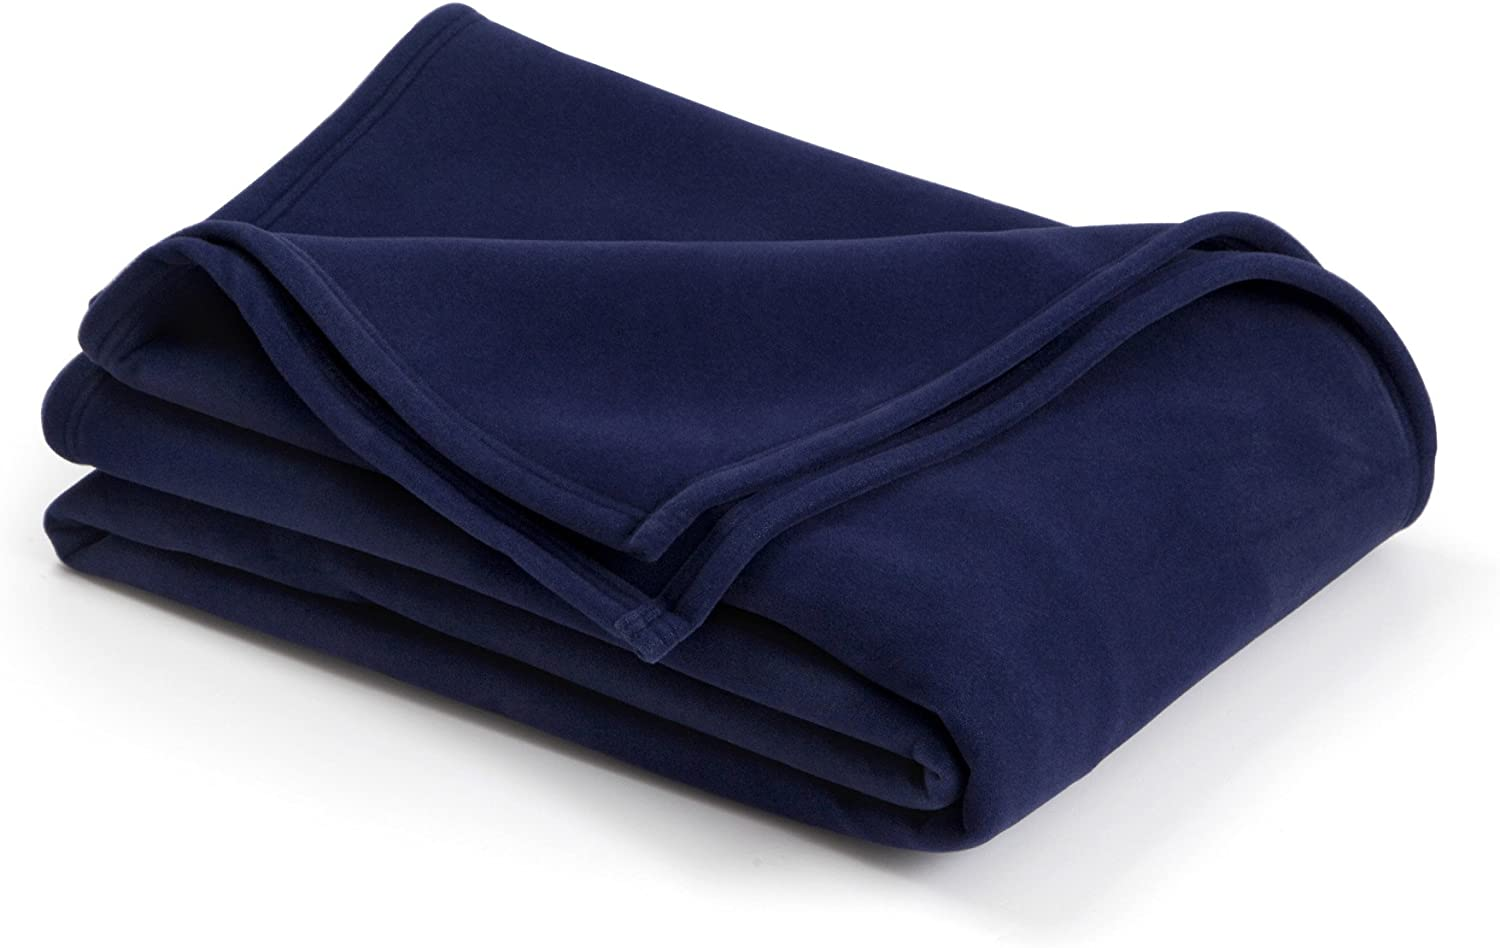 The Original Vellux Blanket - Full/Queen, Soft, Warm, Insulated, Pet-Friendly, Home Bed & Sofa - Navy: Home & Kitchen